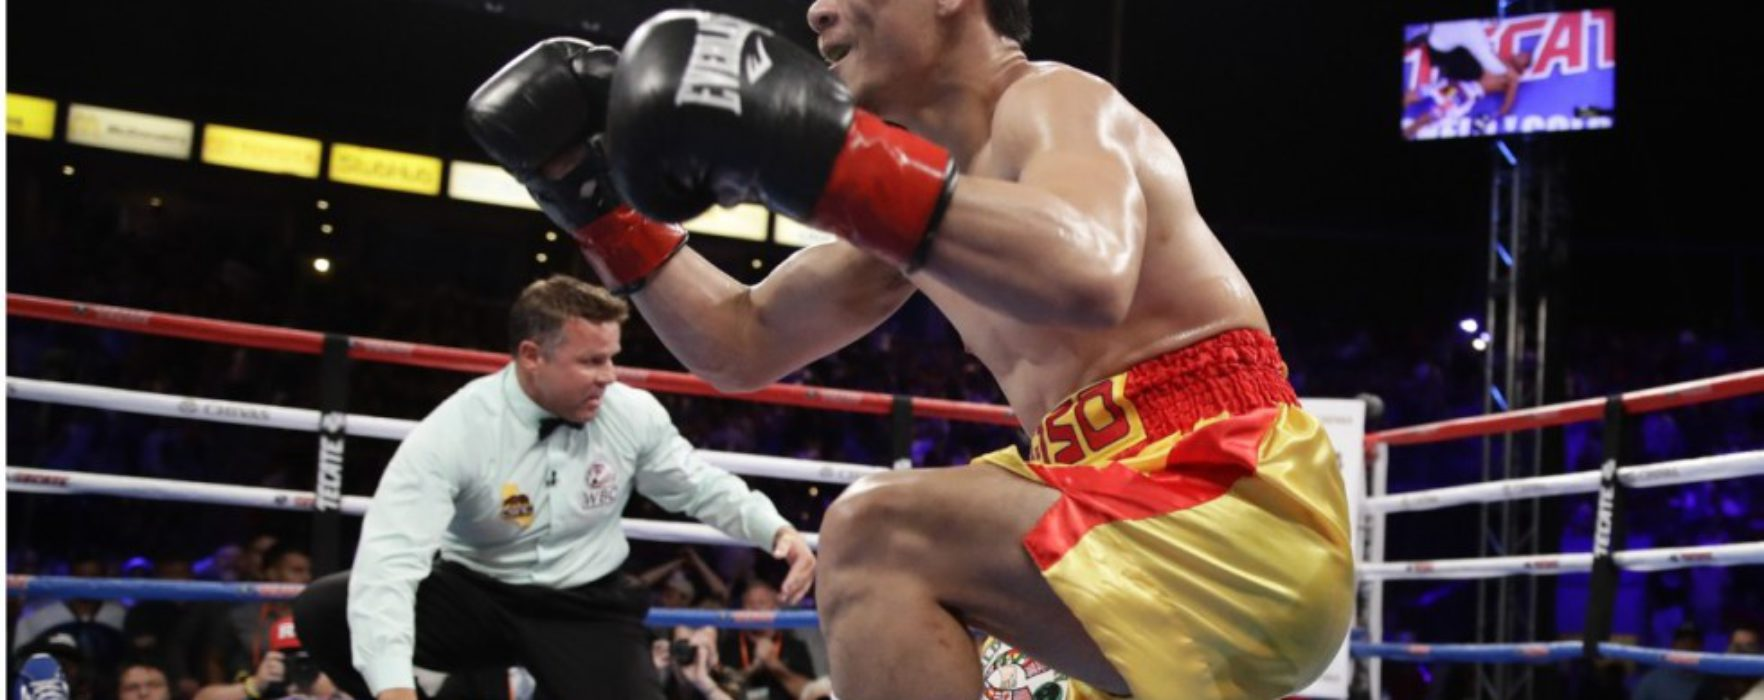 Not just Muay Thai: Srisaket Sor Rungvisai, the Thai who shocked the boxing world